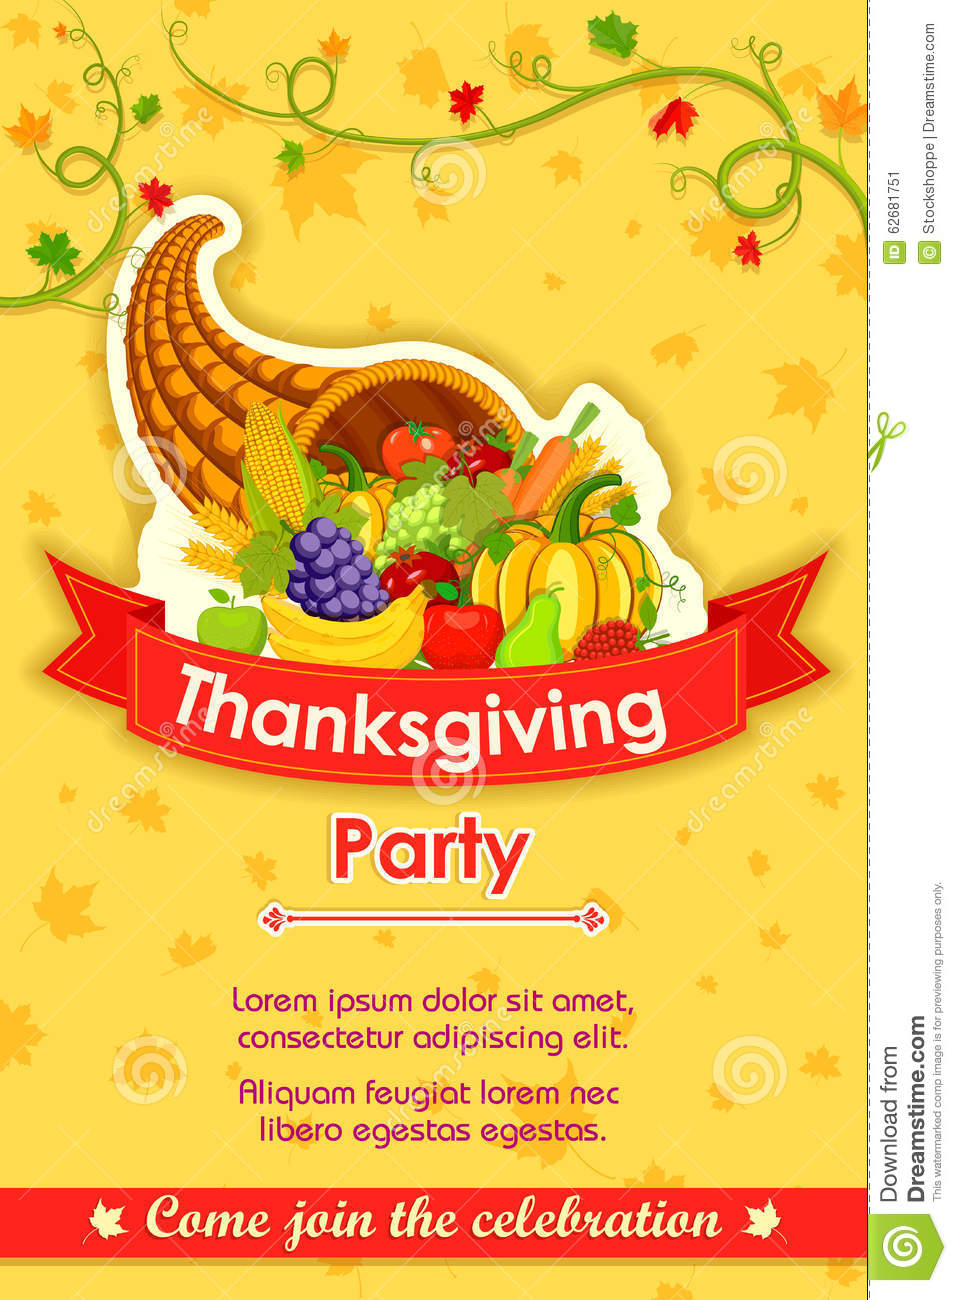 Fall Turkey Wallpaper Happy Thanksgiving Party Invitation Background Stock